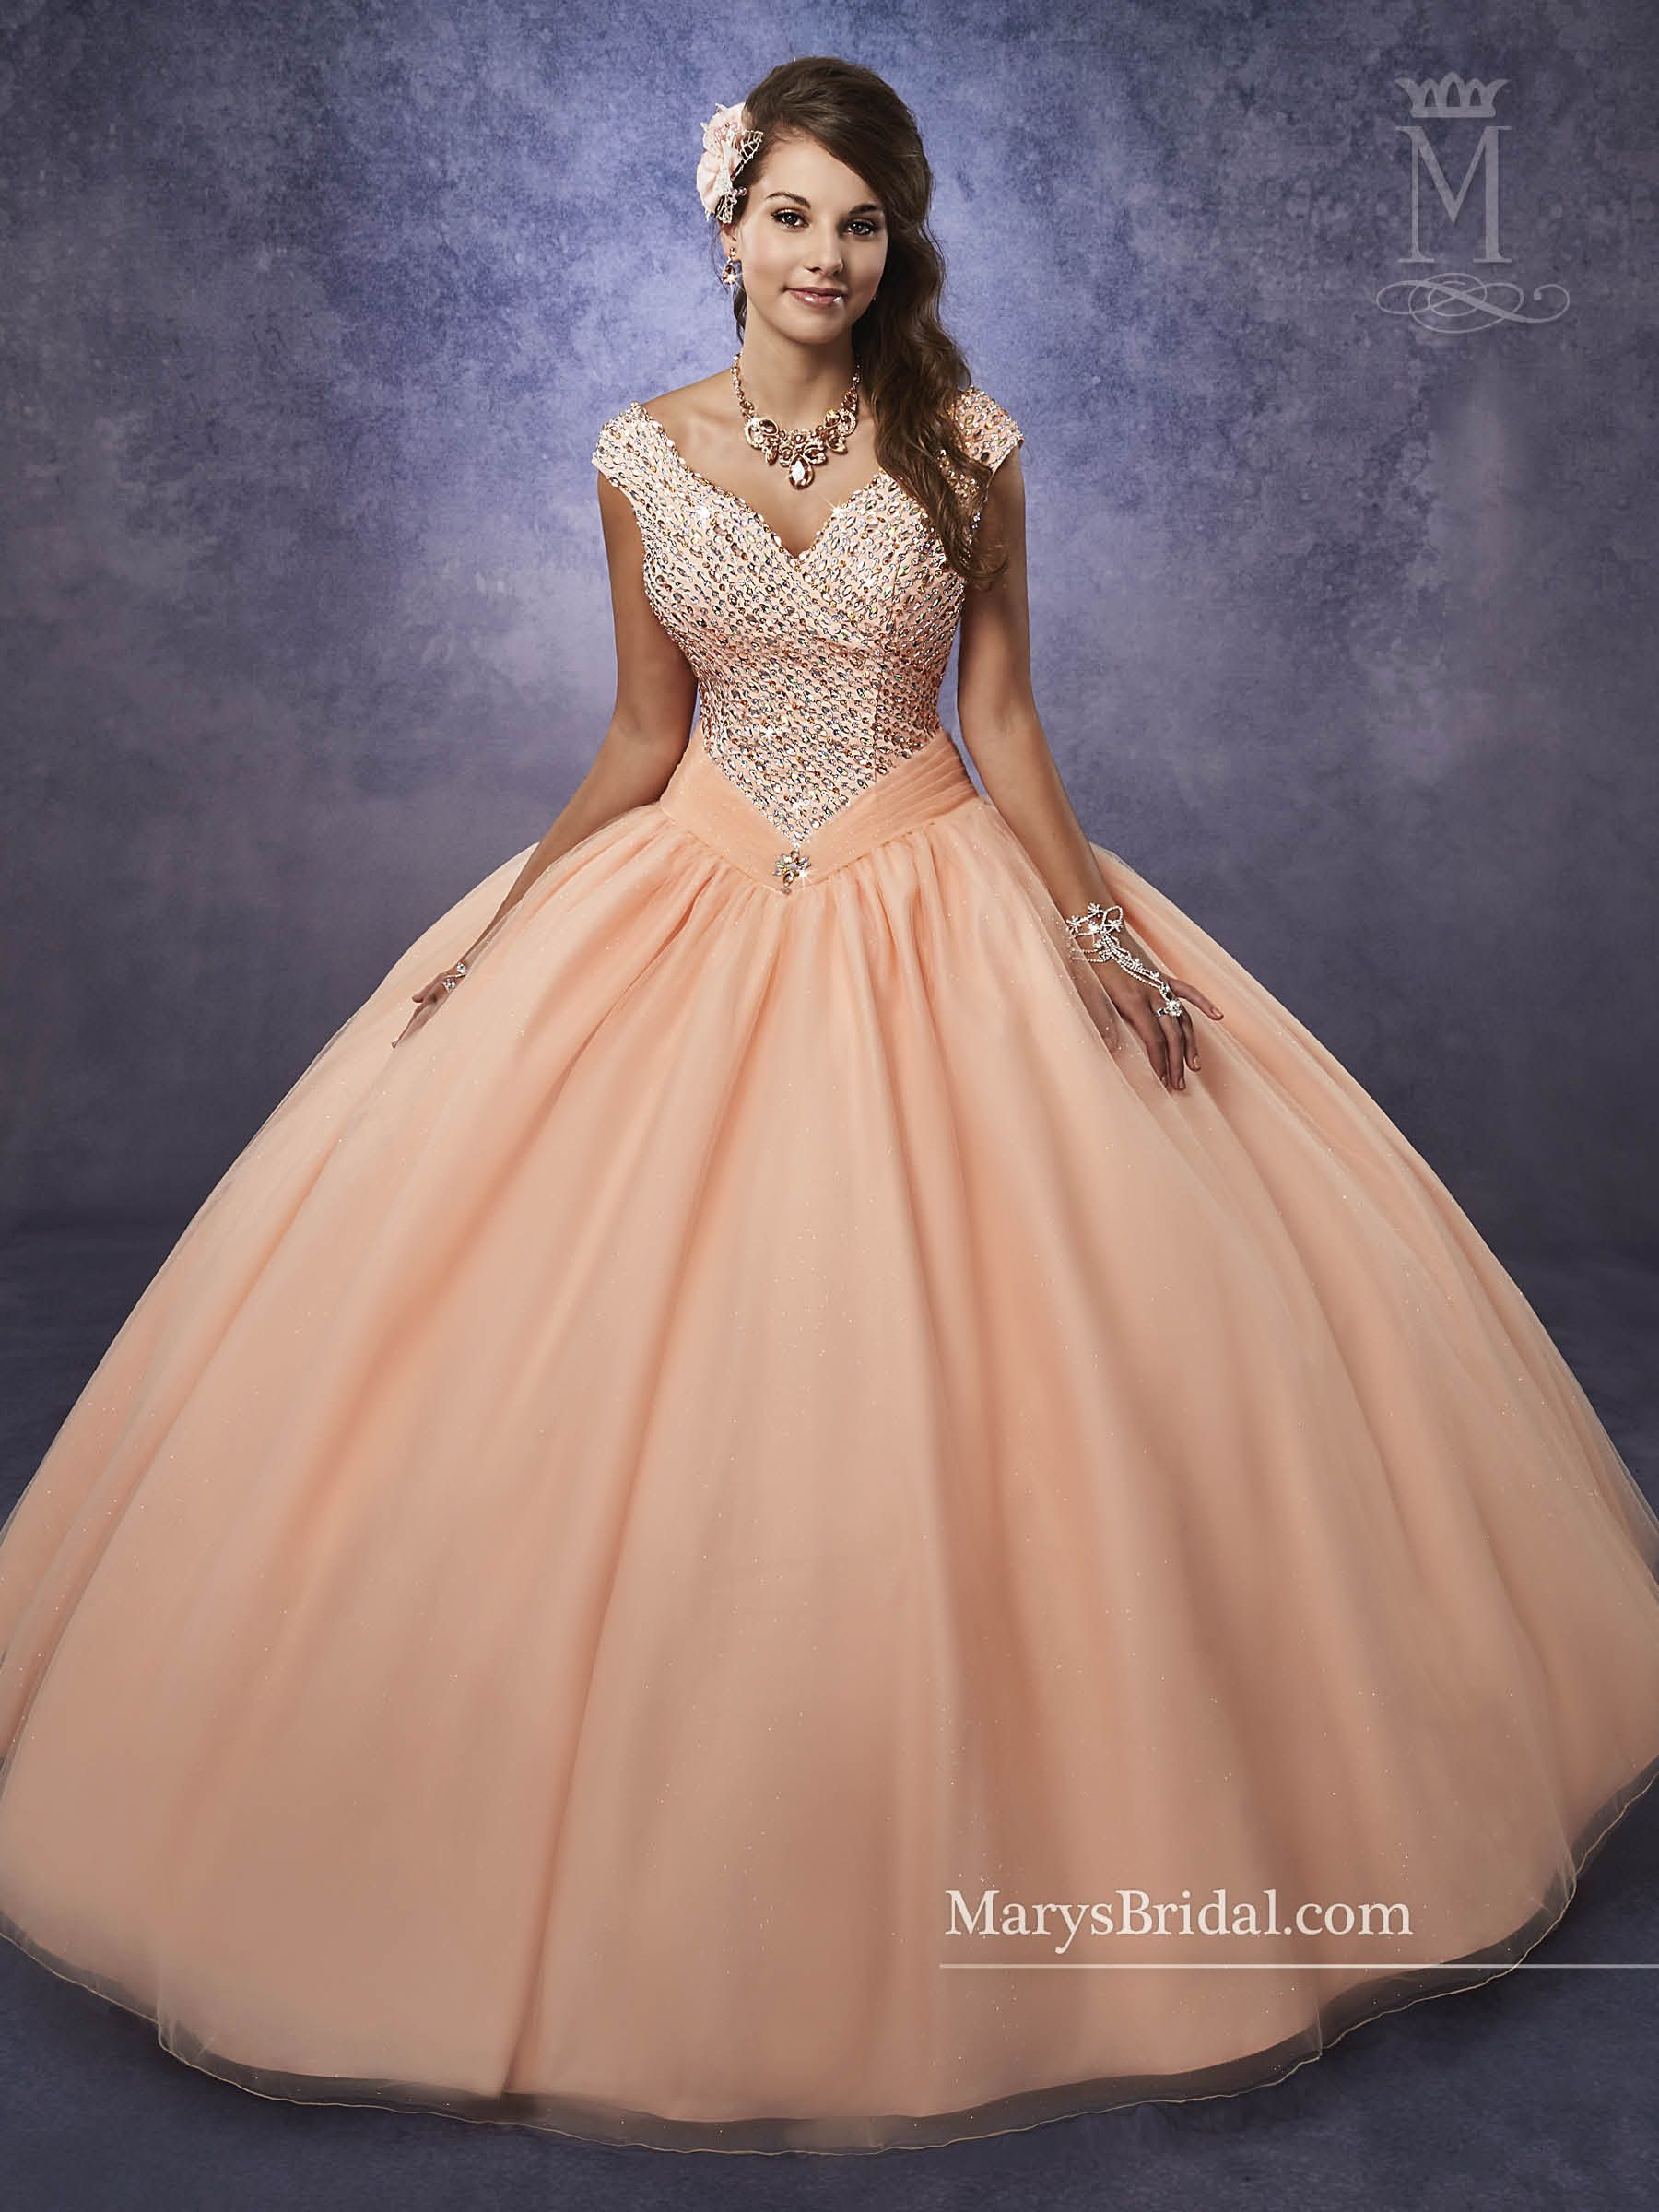 b1883fede 20 New Off-the-shoulder Quinceanera Dresses - Quinceanera ...